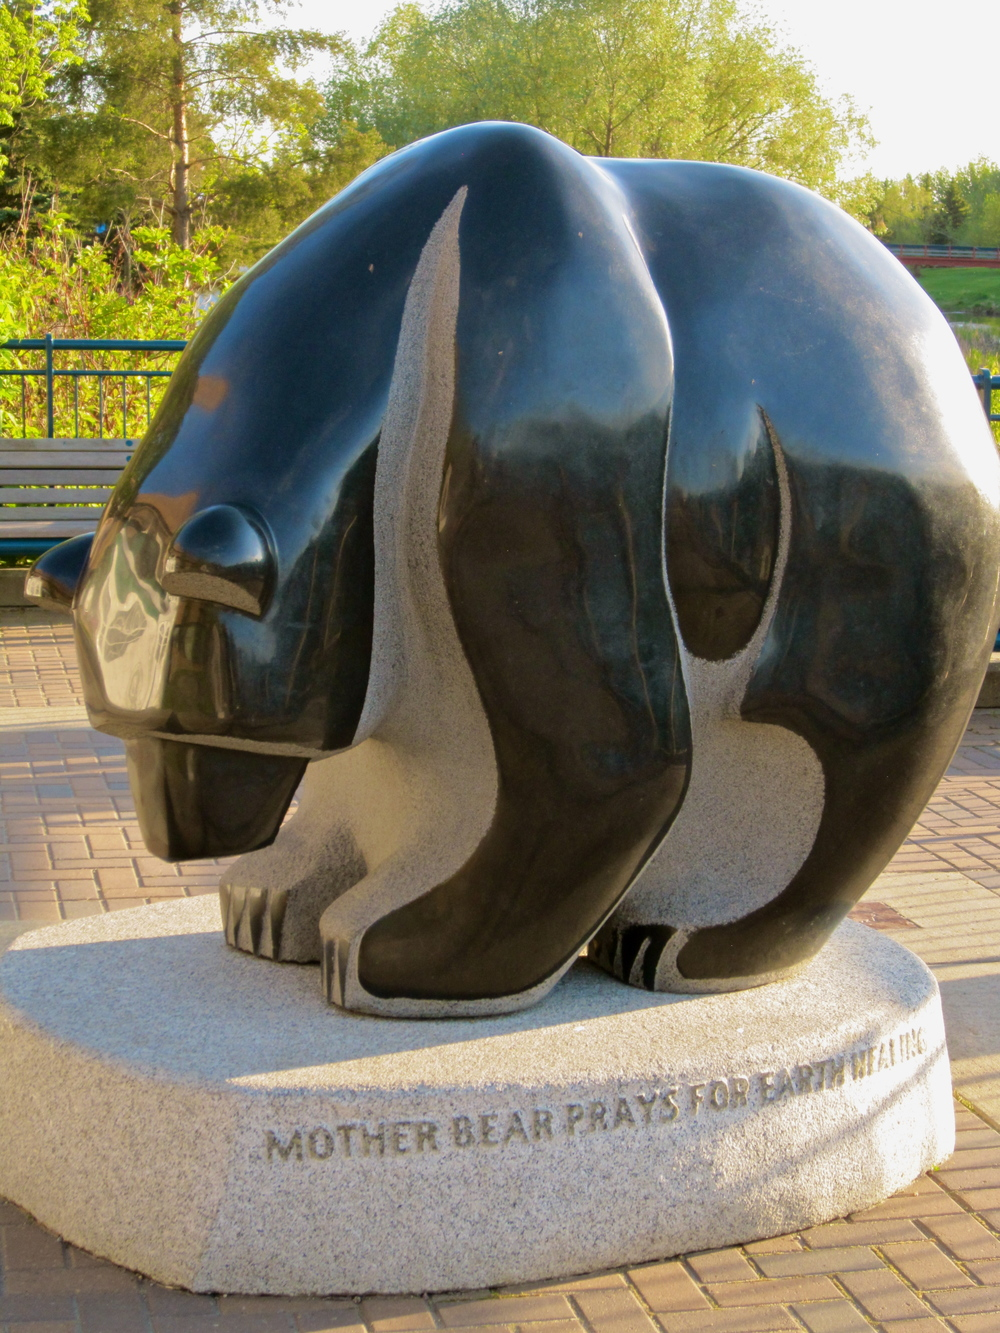 Mother Bear Preys for Earth Healing, 2007     Stewart Steinhauer